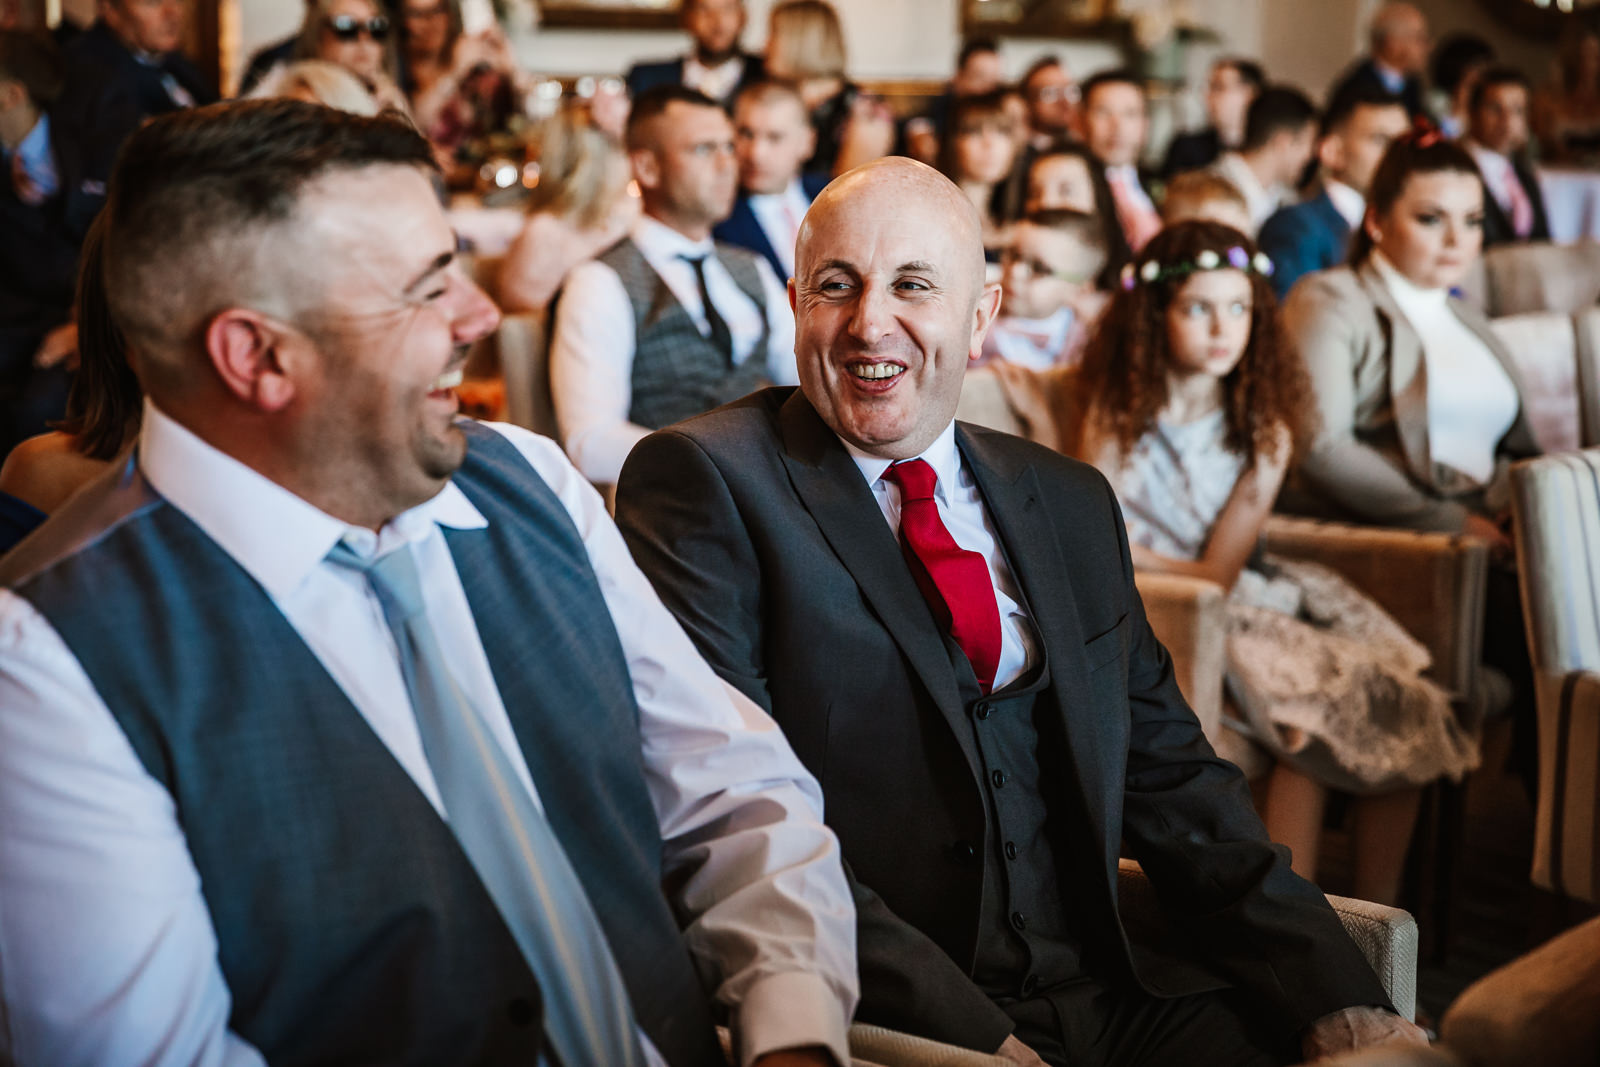 Wedding guests laughing during the ceremony